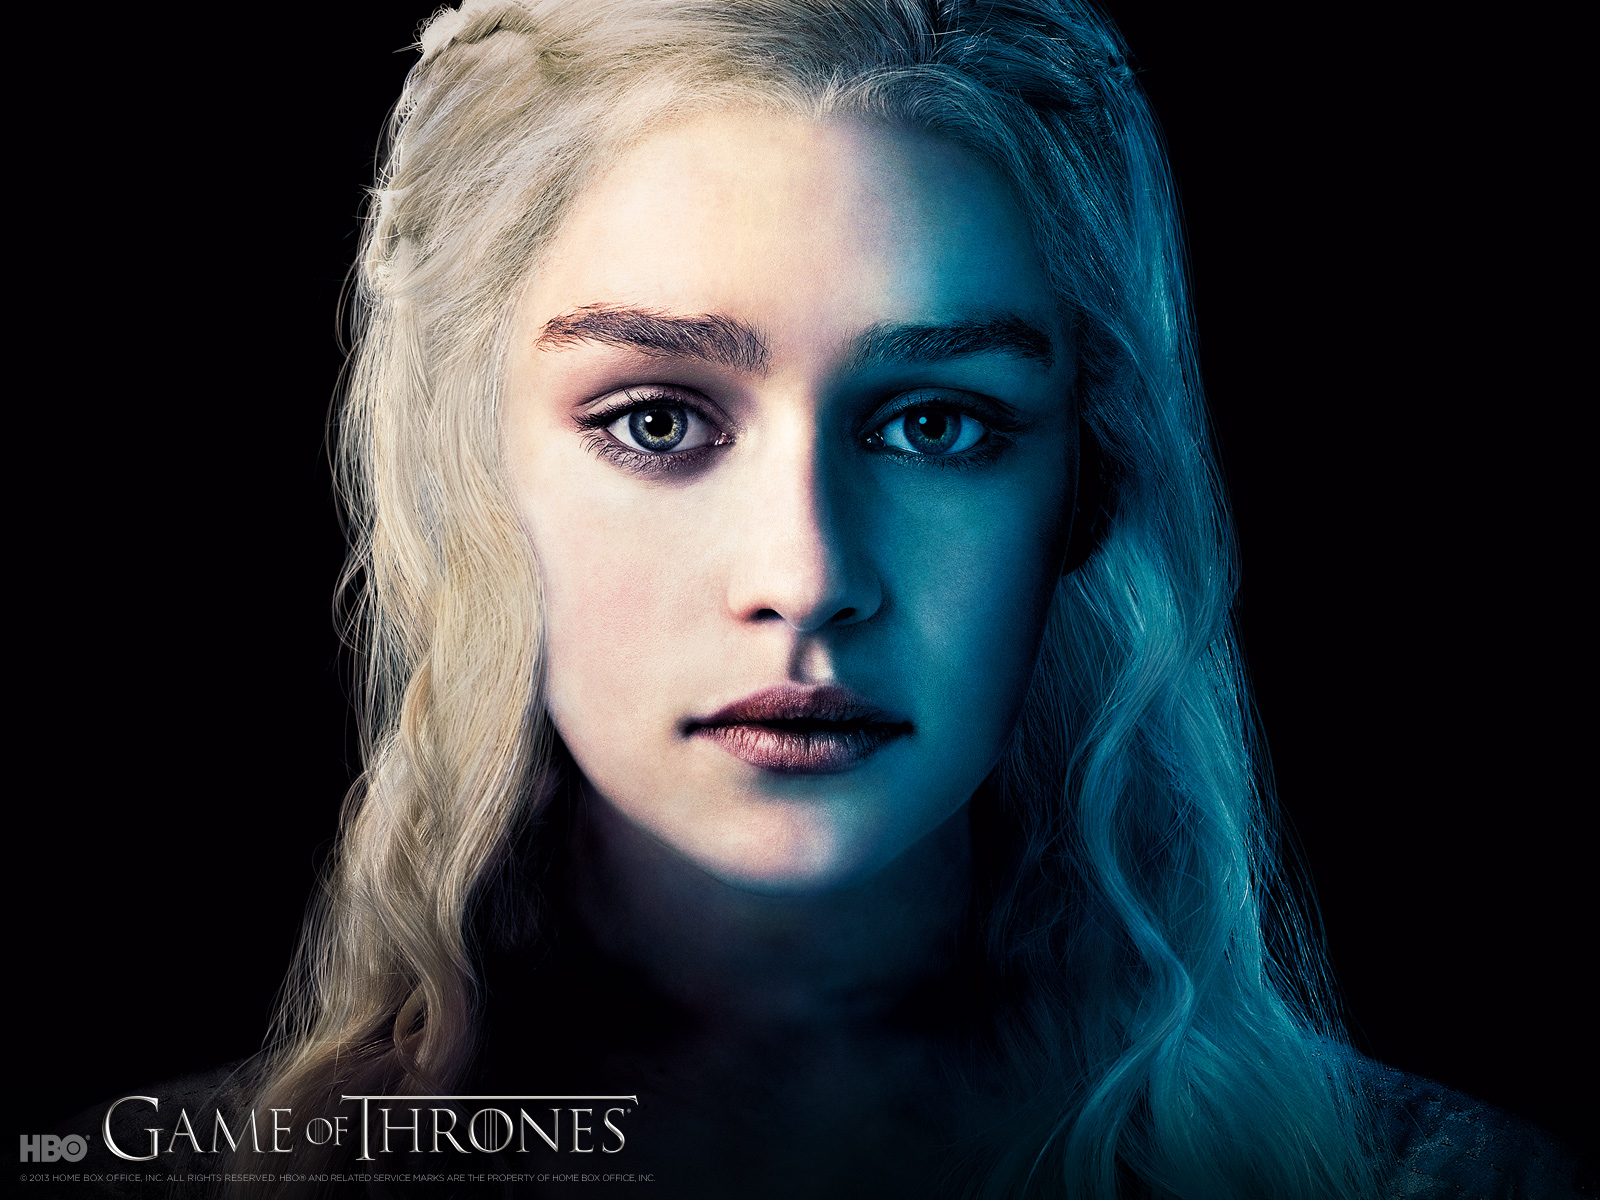 Game Of Thrones Daenerys Wallpaper: Game Of Thrones Daenerys Targaryen Wallpapers